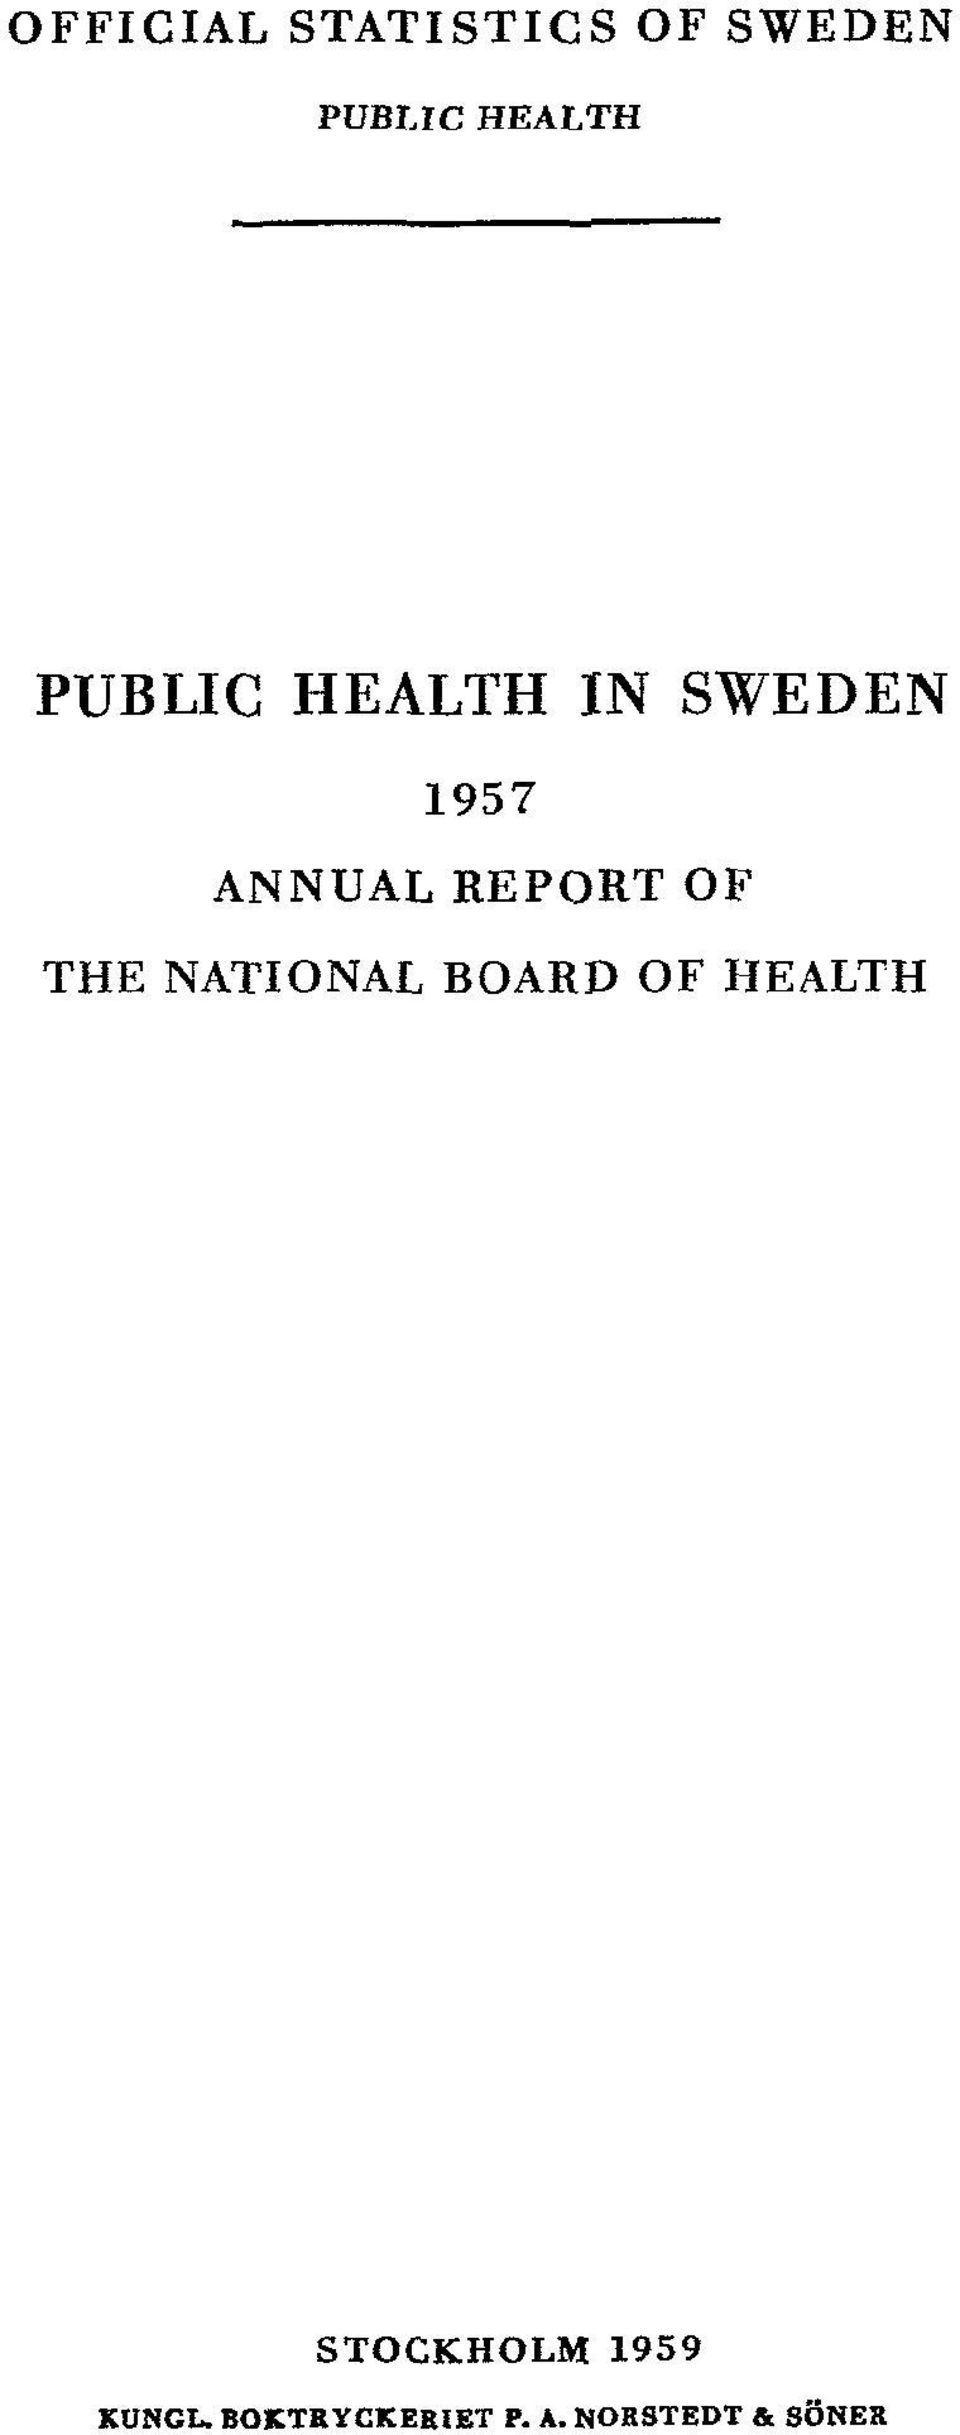 OF THE NATIONAL BOARD OF HEALTH STOCKHOLM